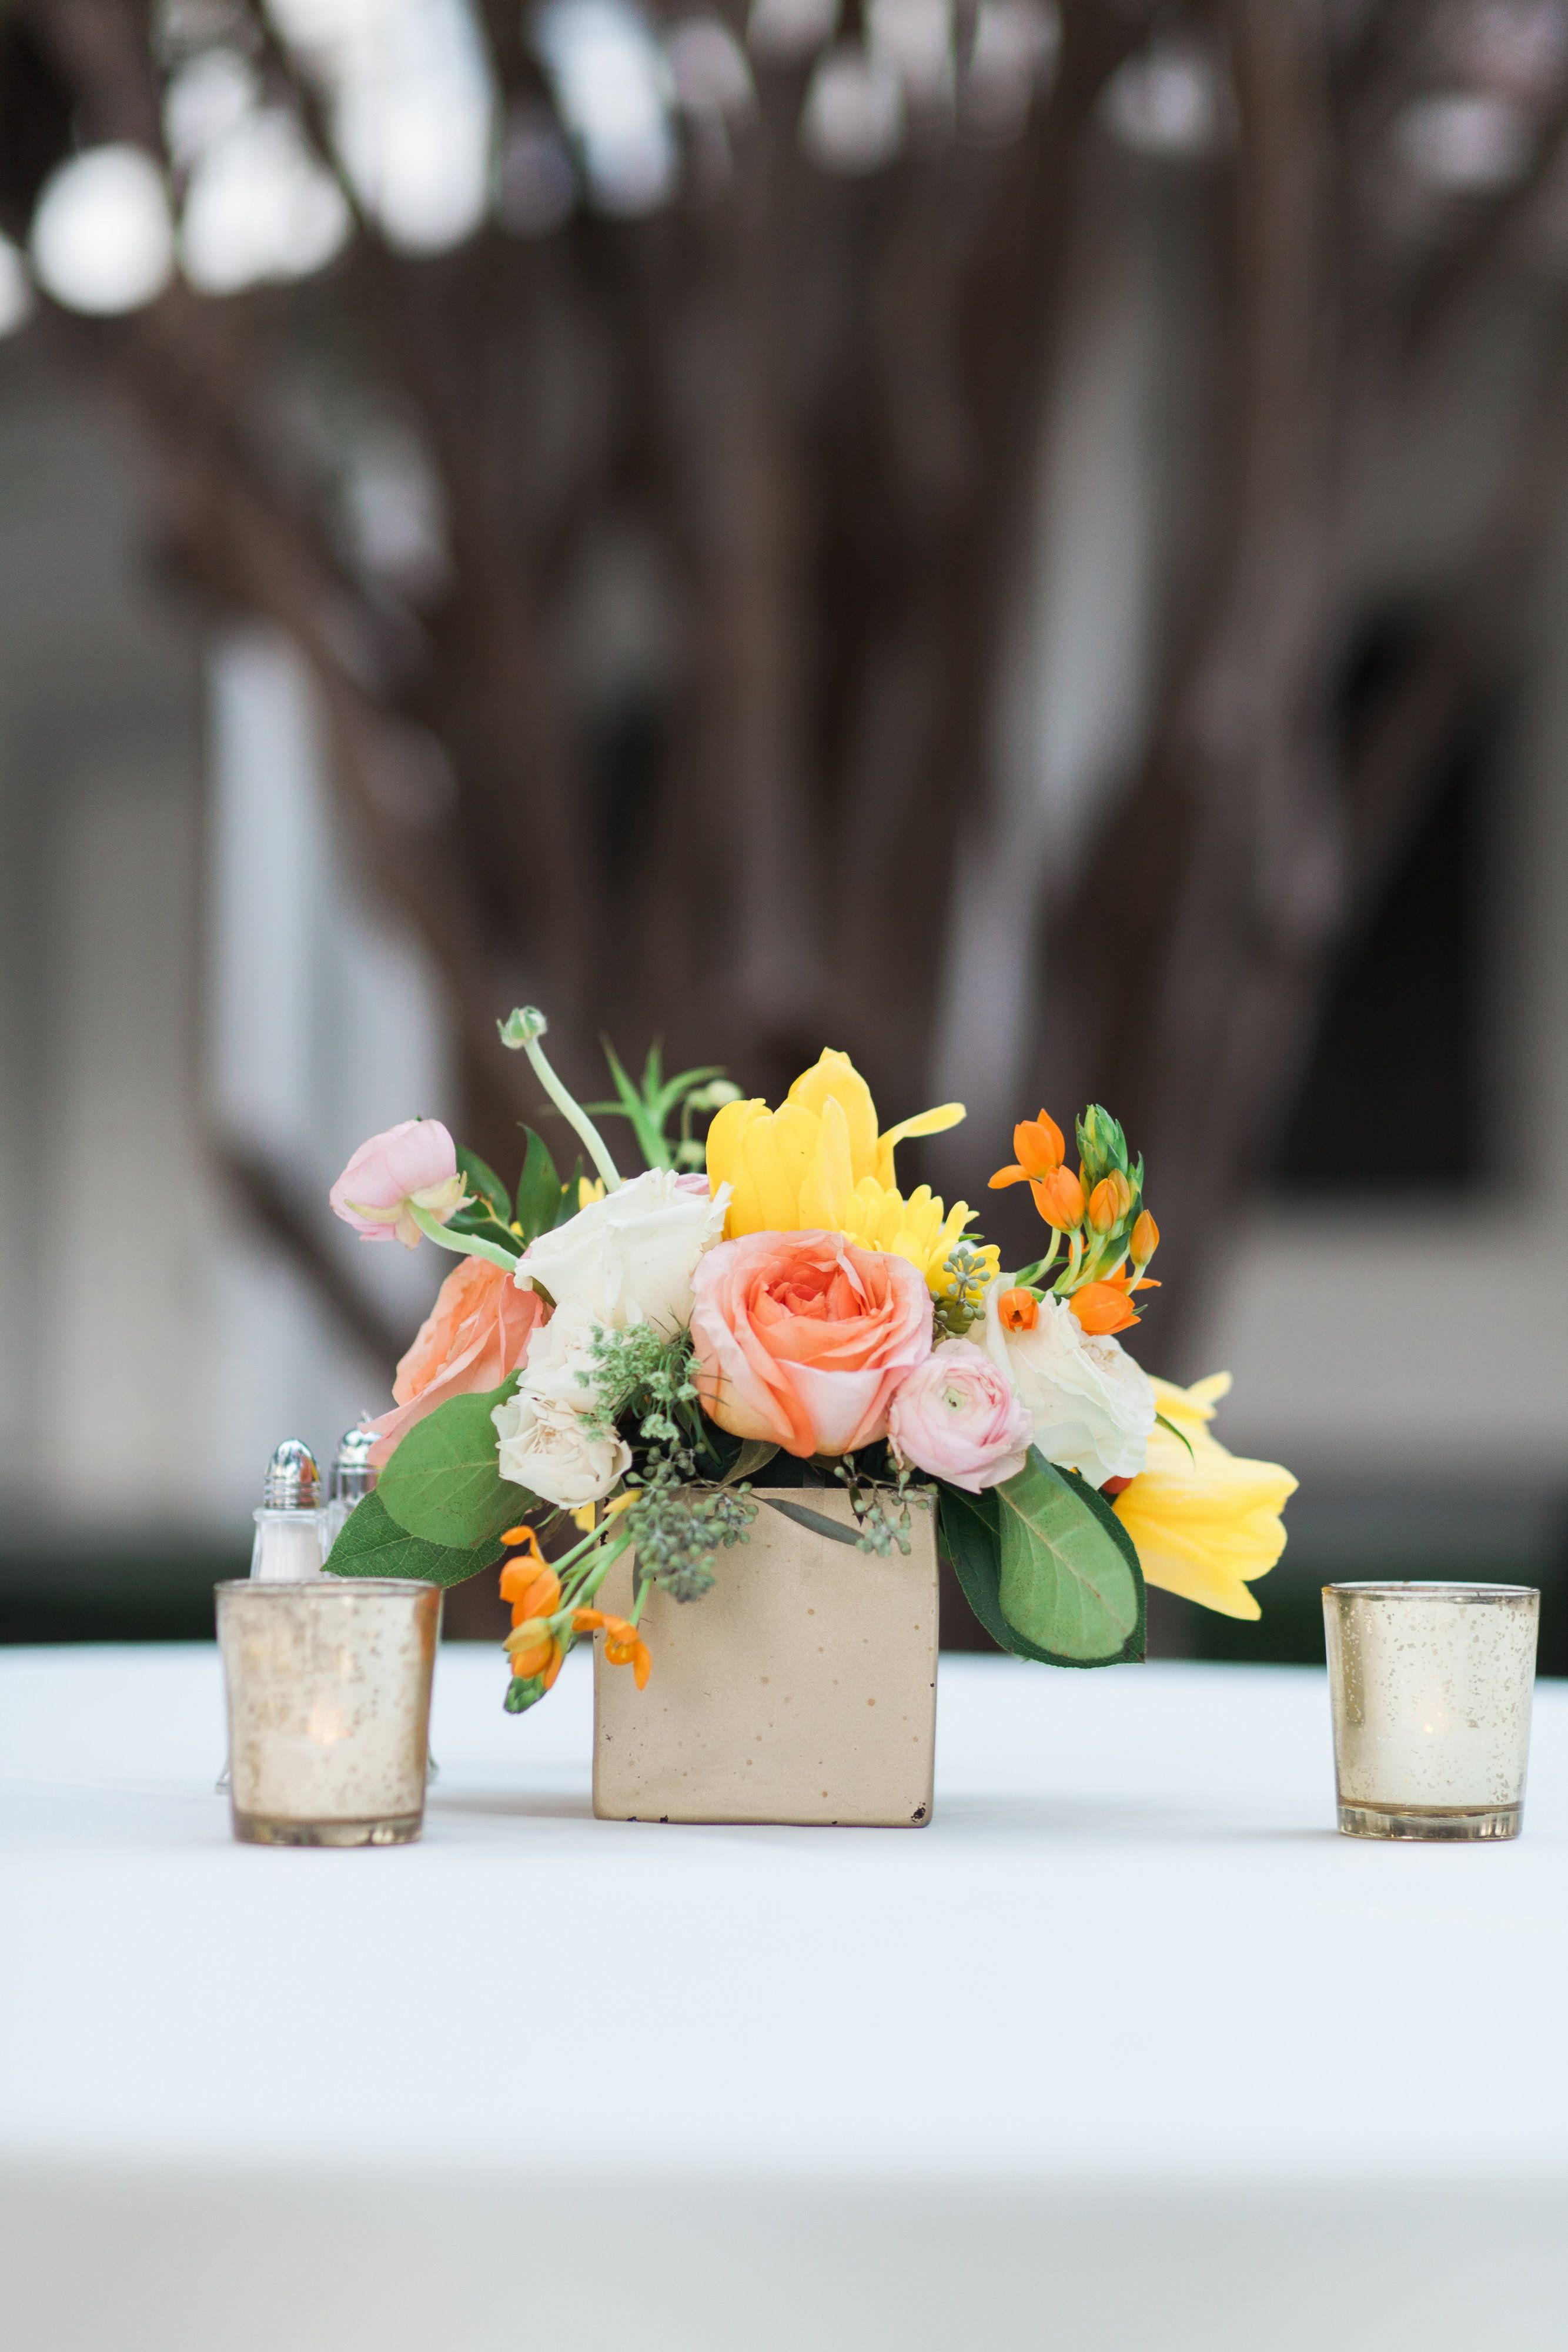 Disch Events provided the simple, yet perfect aesthetic to ...